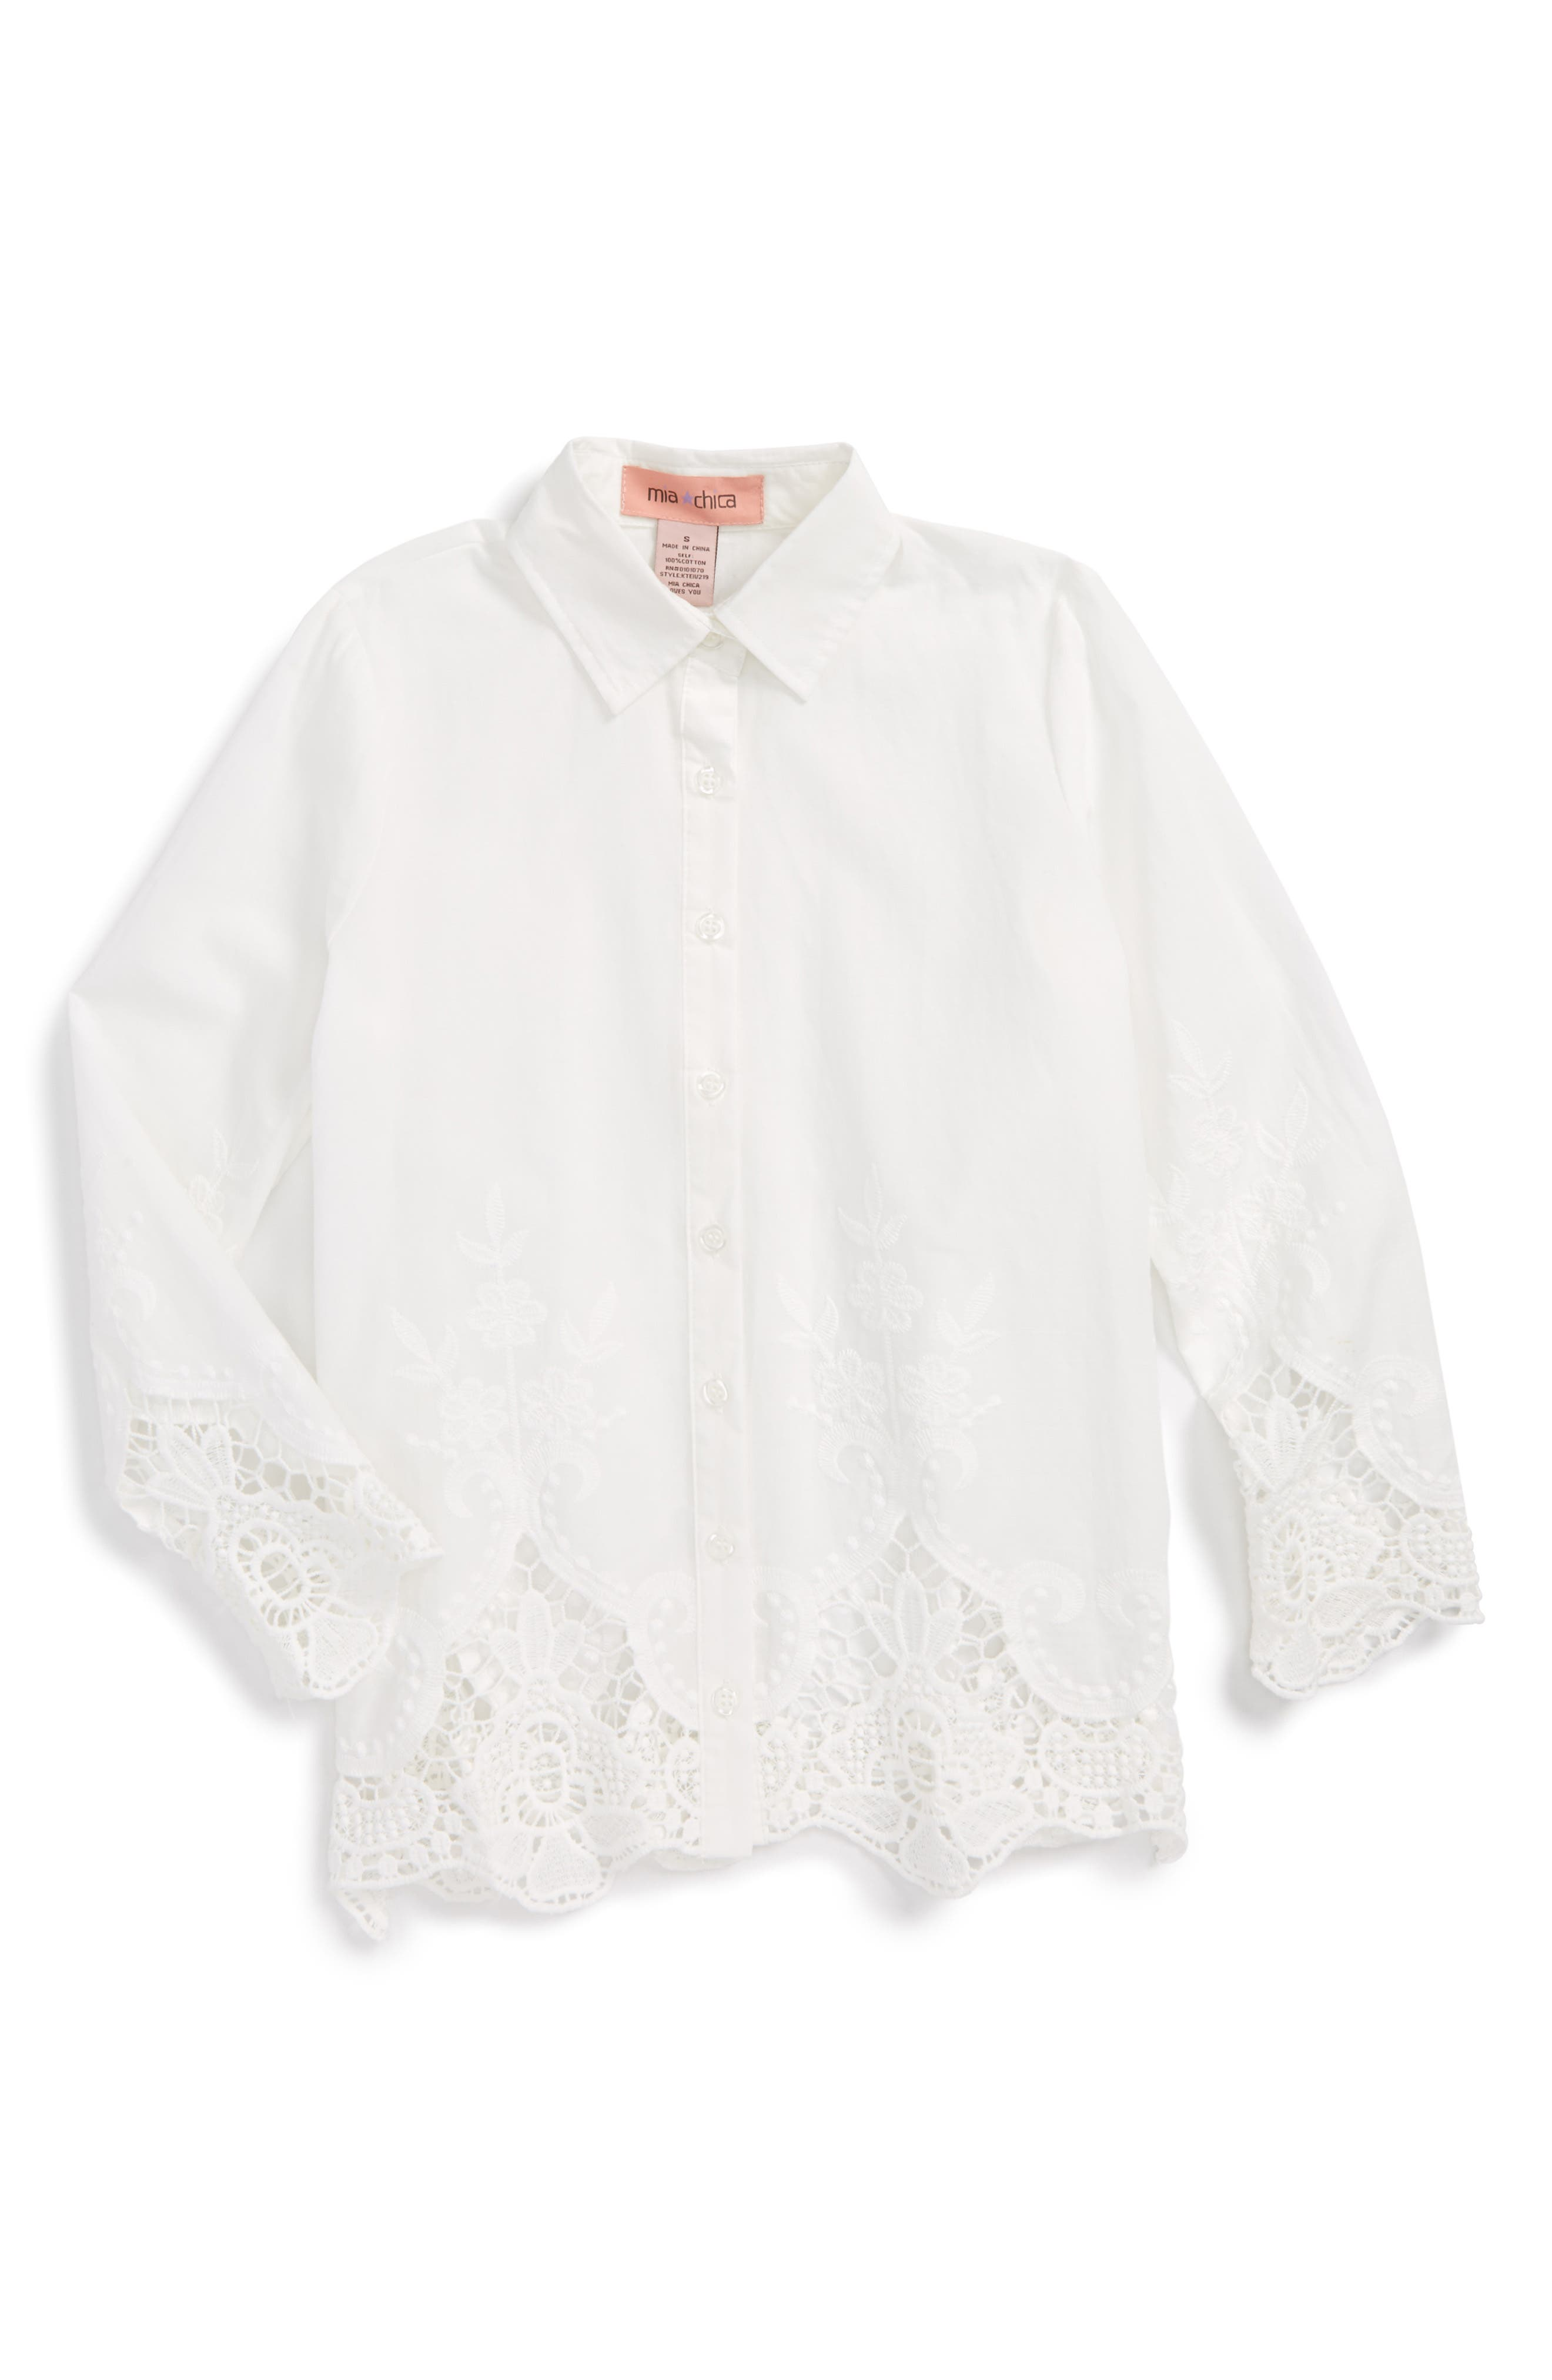 Mia Chica Embroidered Tunic (Big Girls)